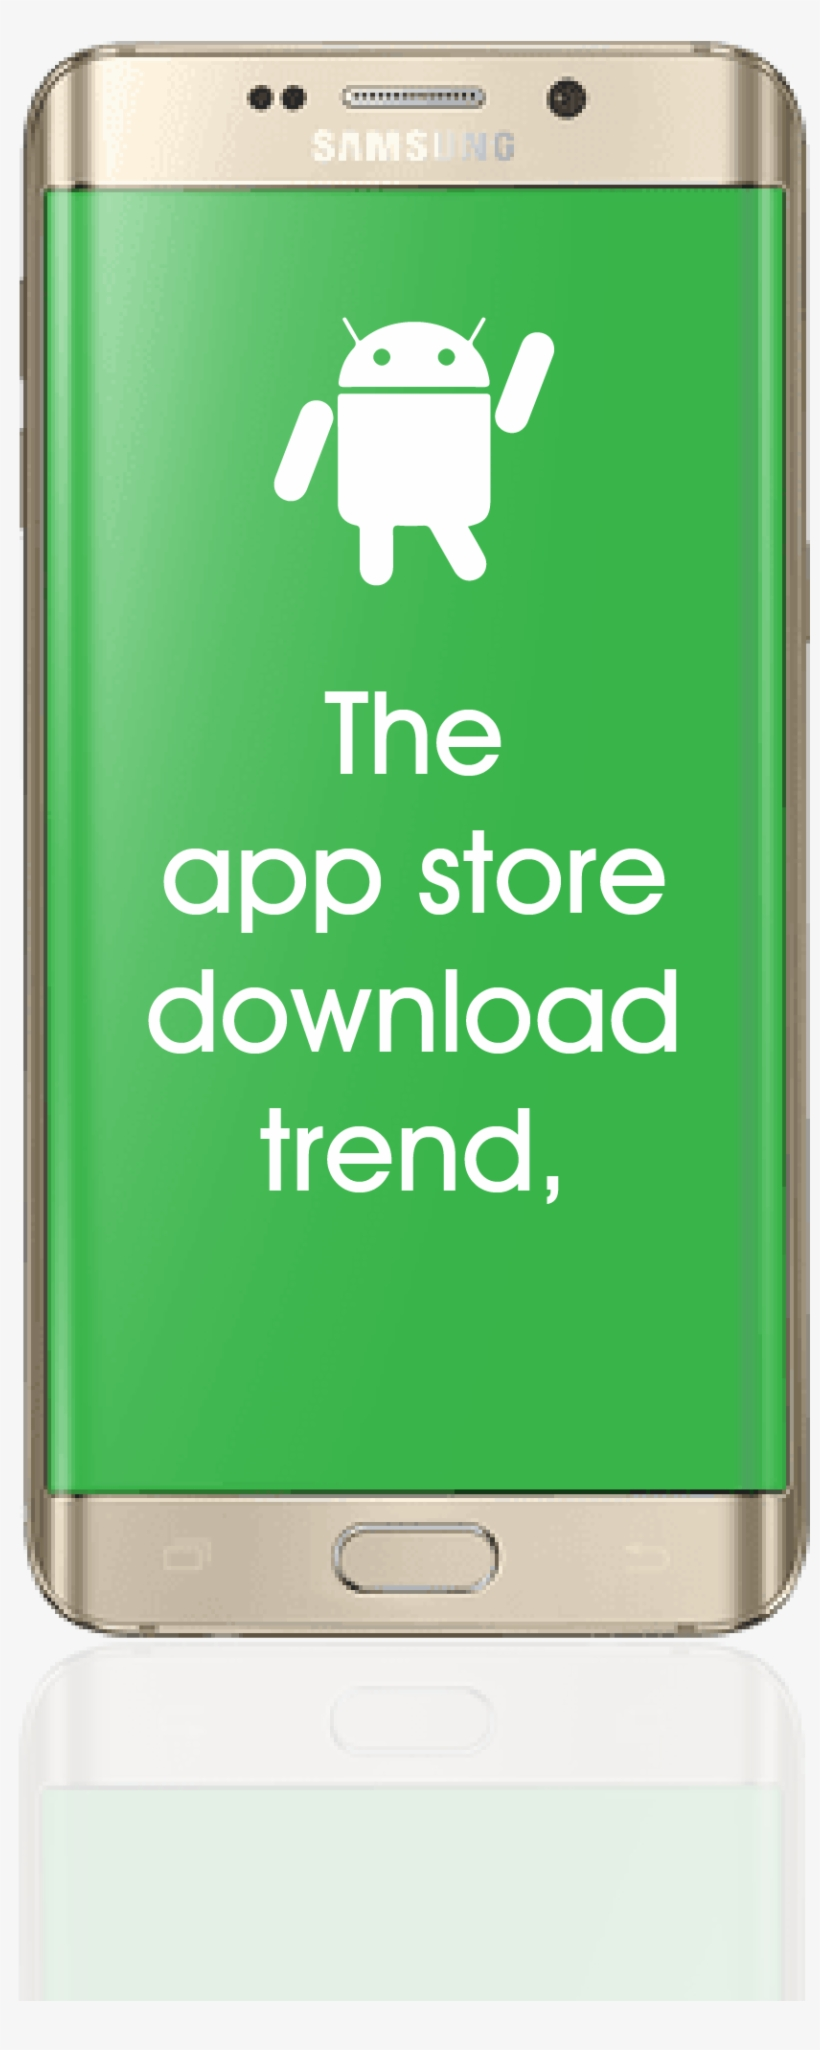 New Zealand 's Digital App Store Trends And Future - Rose Gold Vs Millennial Pink, transparent png #8320223